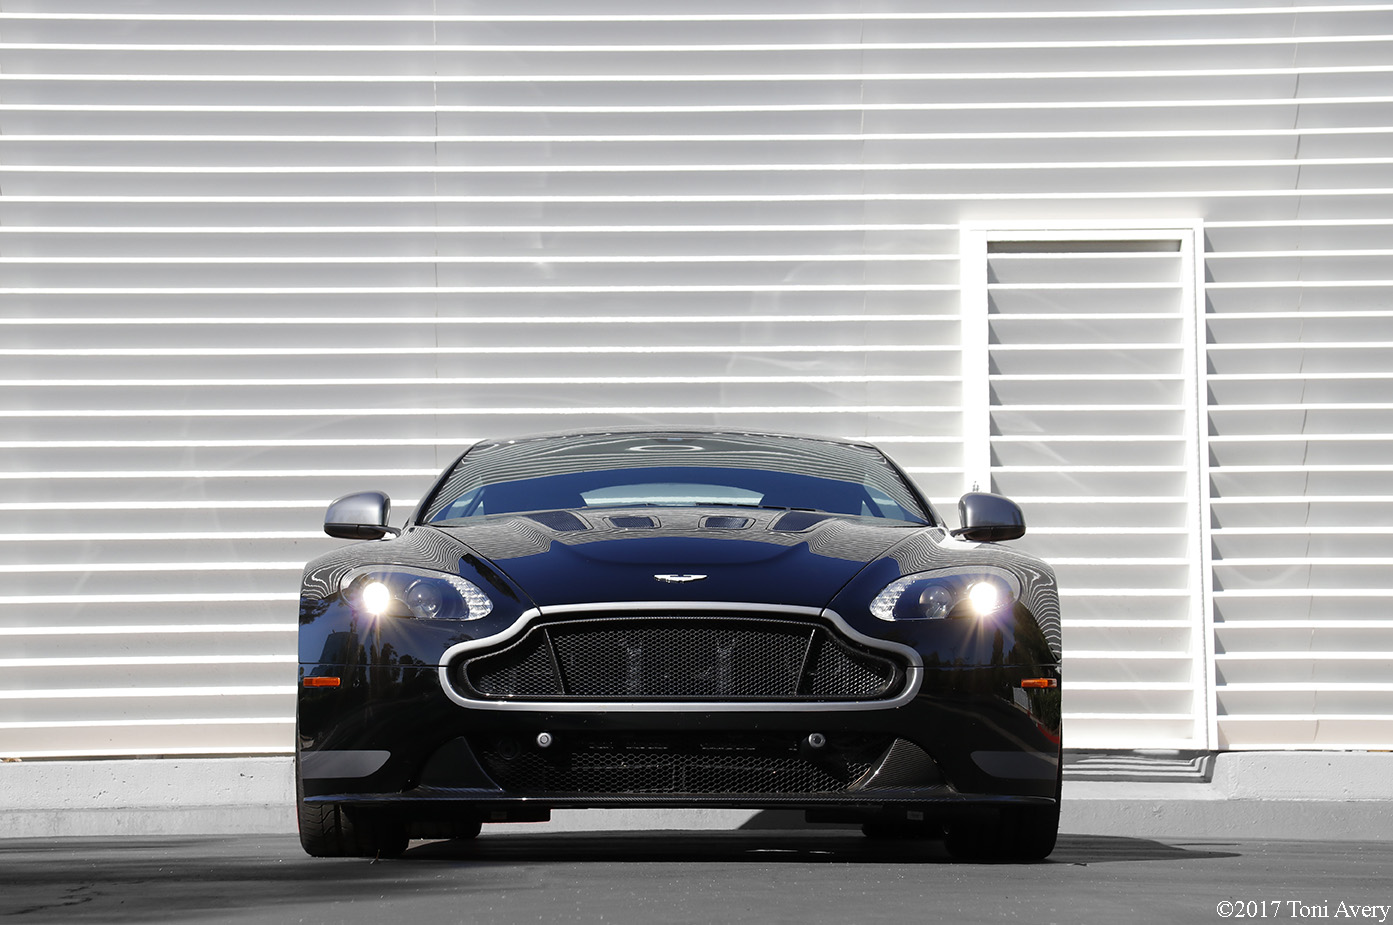 2017 Aston Martin V12 Vantage S Review